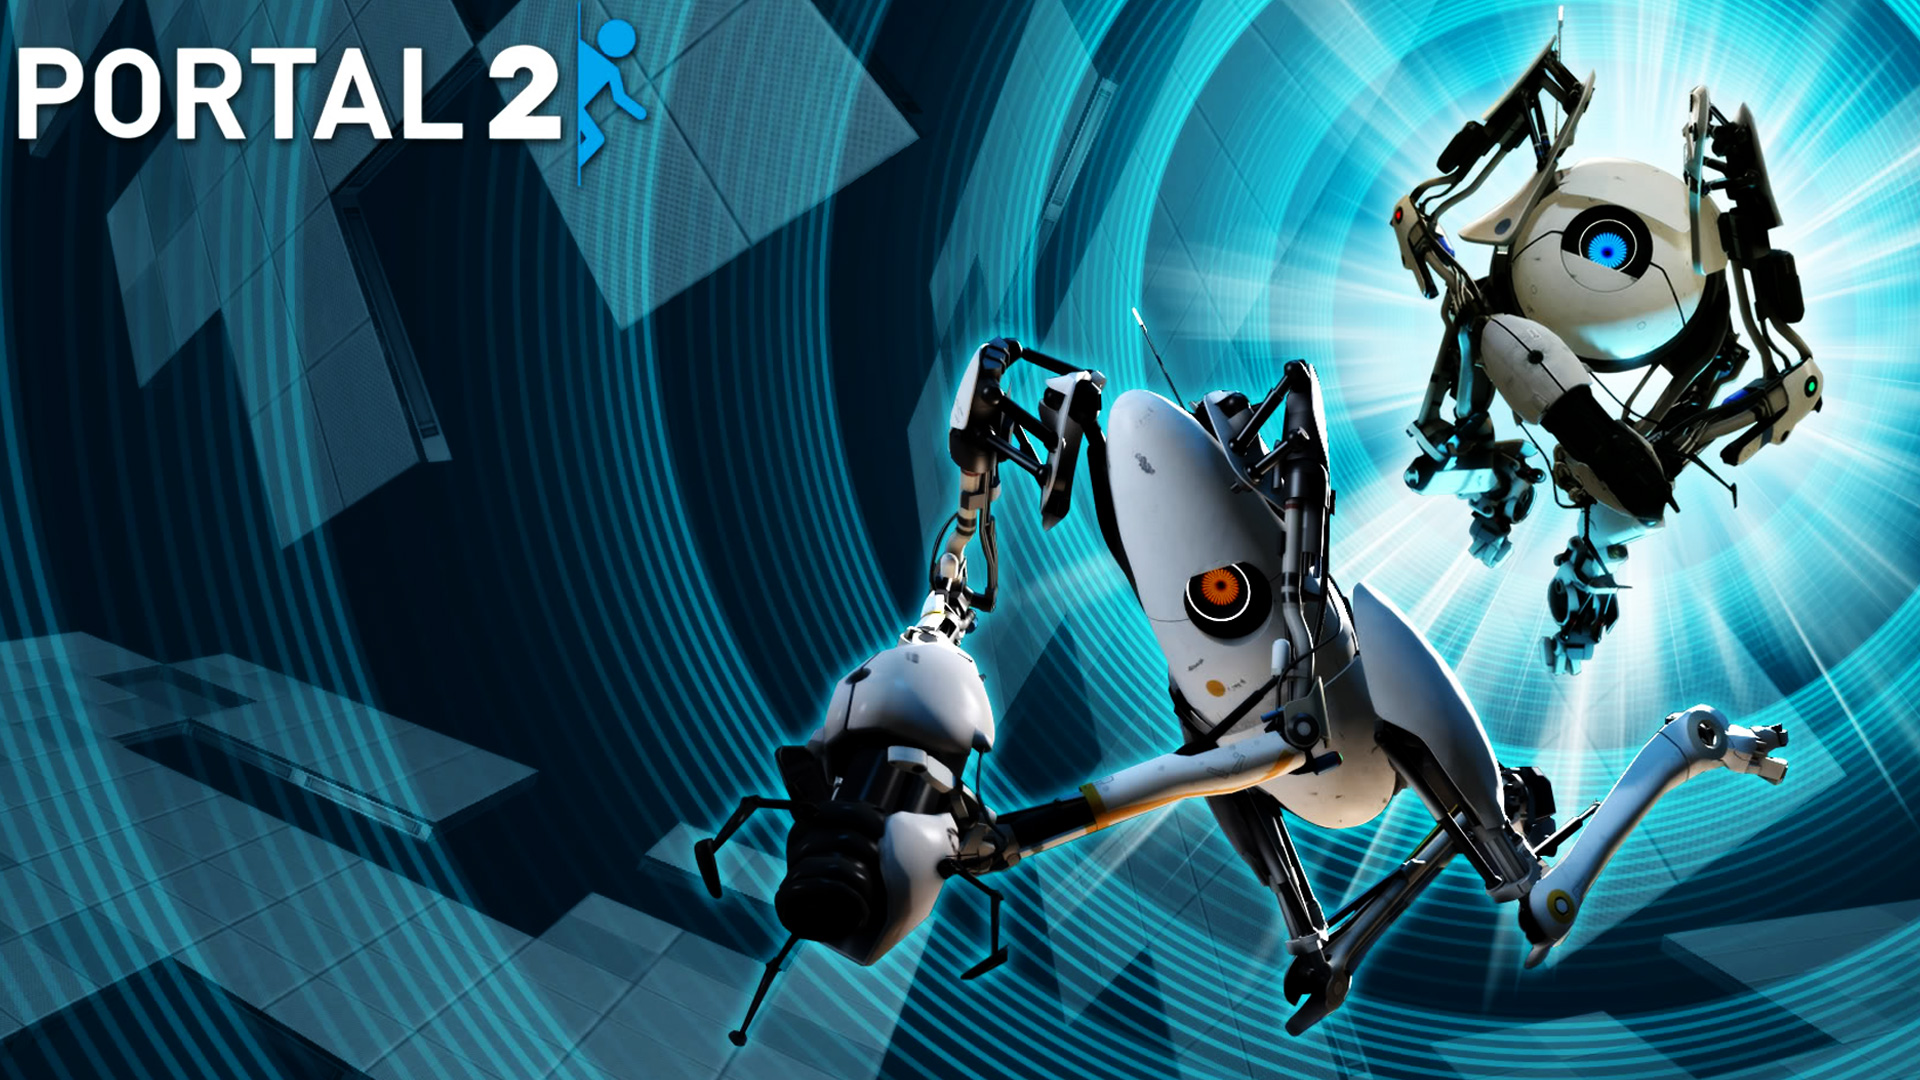 wallpapers of Portal 2 You are downloading Portal 2 wallpaper 11 1920x1080